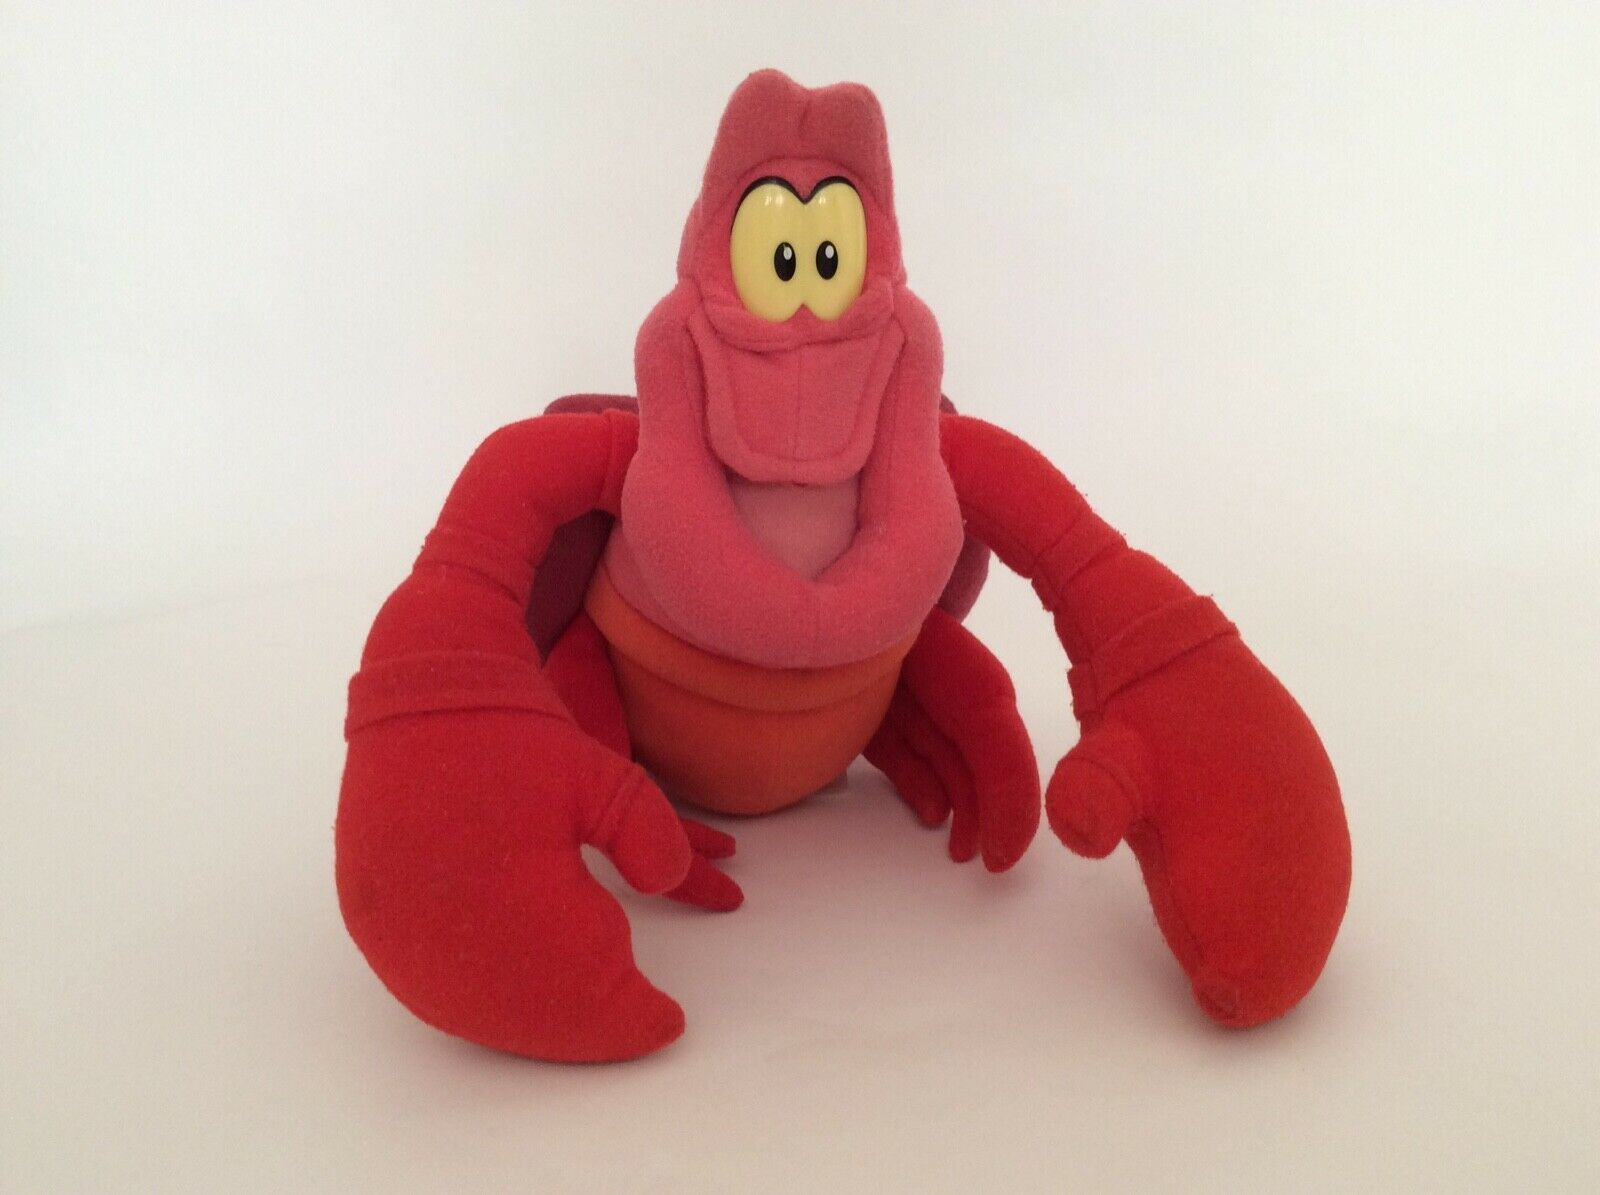 "DISNEY The Little Mermaid red SEBASTIAN THE CRAB 9"" vintage Arcotoys plush"